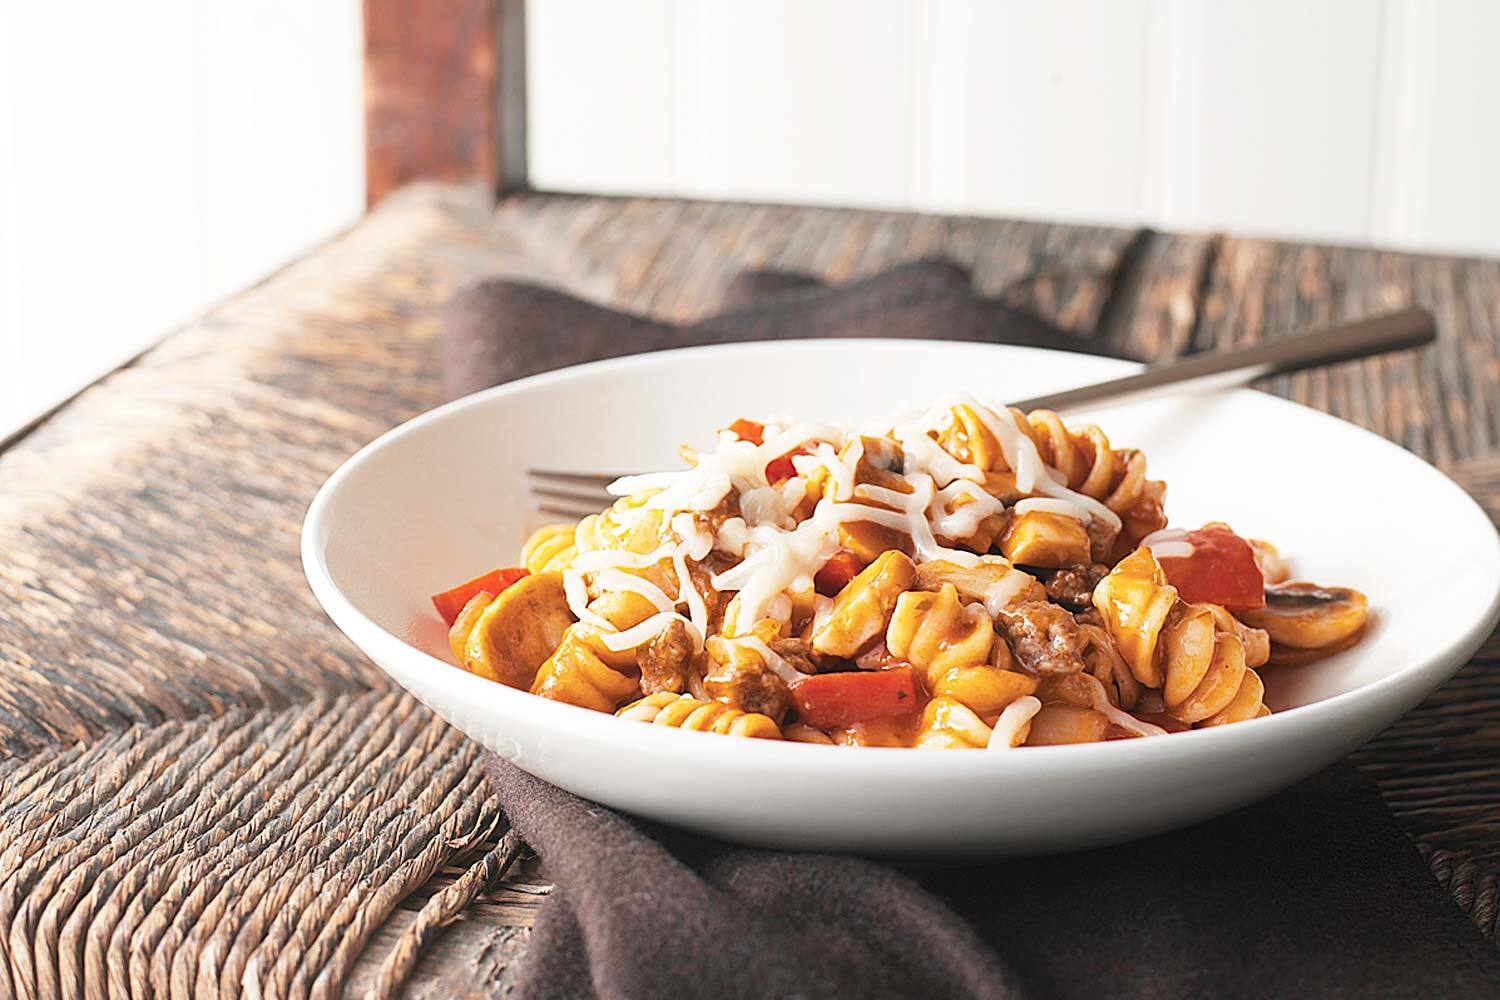 All In One Pot Saucy Pasta Image 1